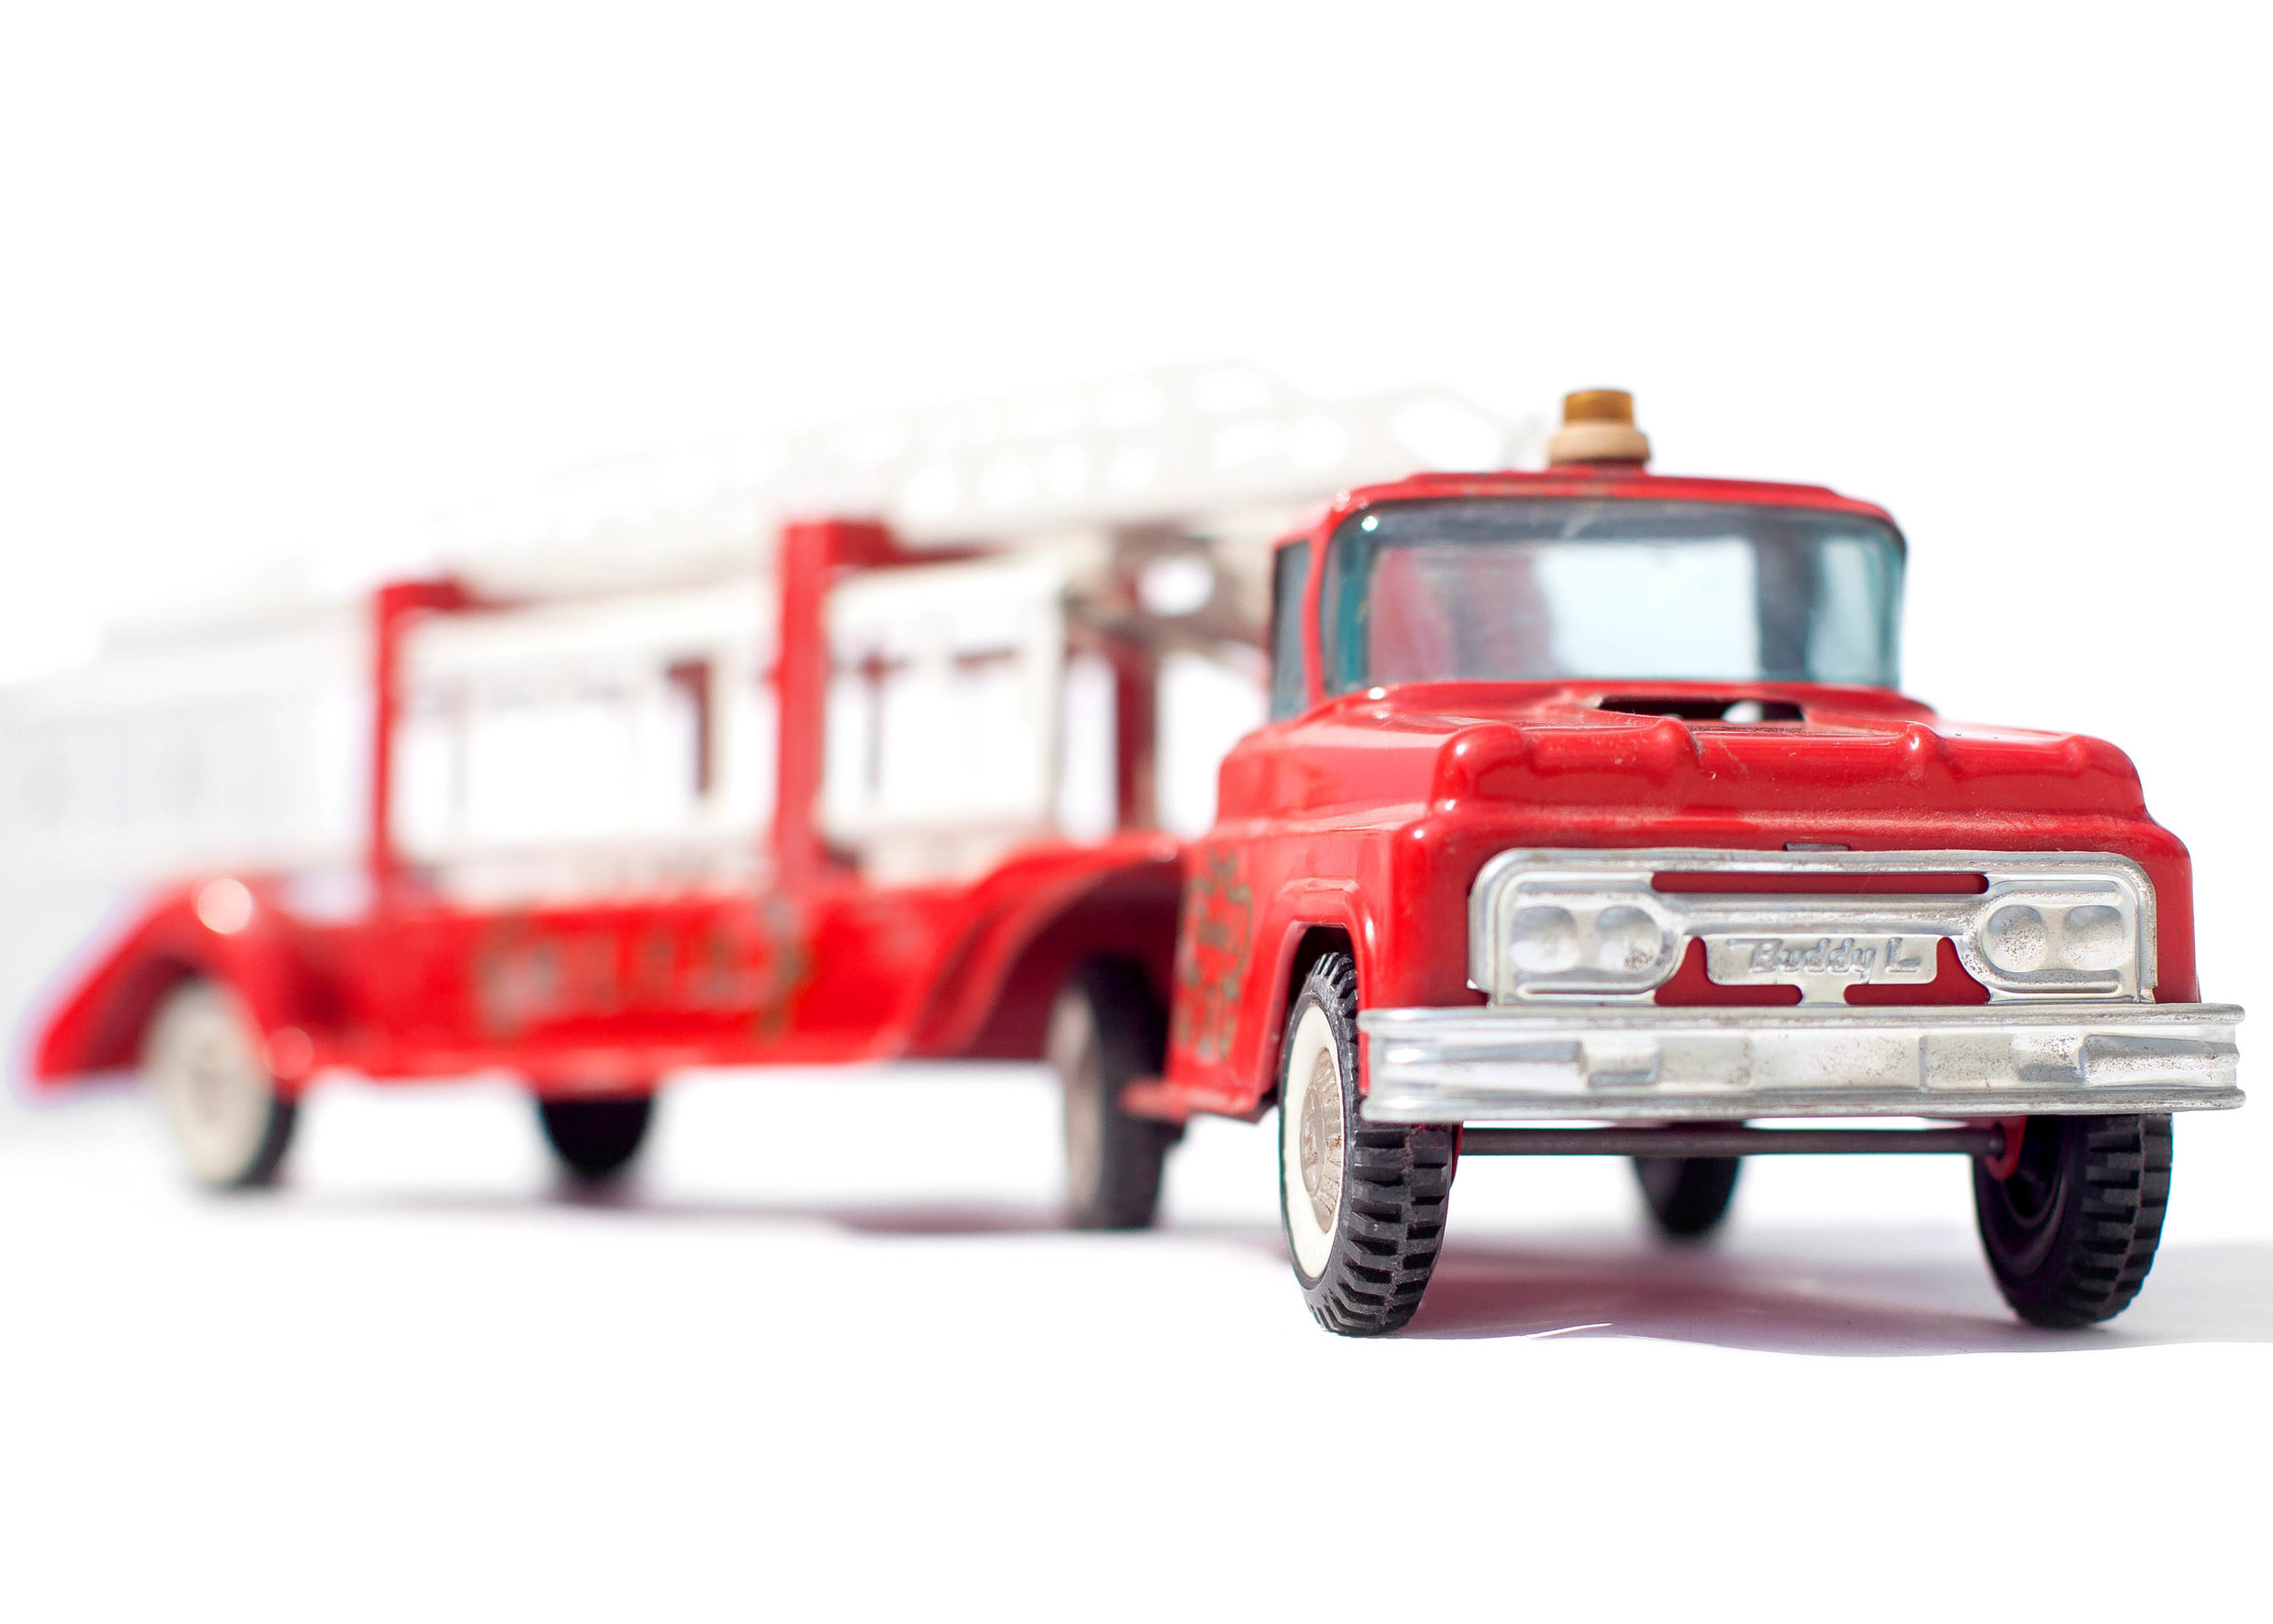 Vintage Red Toy Fire Truck Hook and Ladder Facing Front Right.jpg